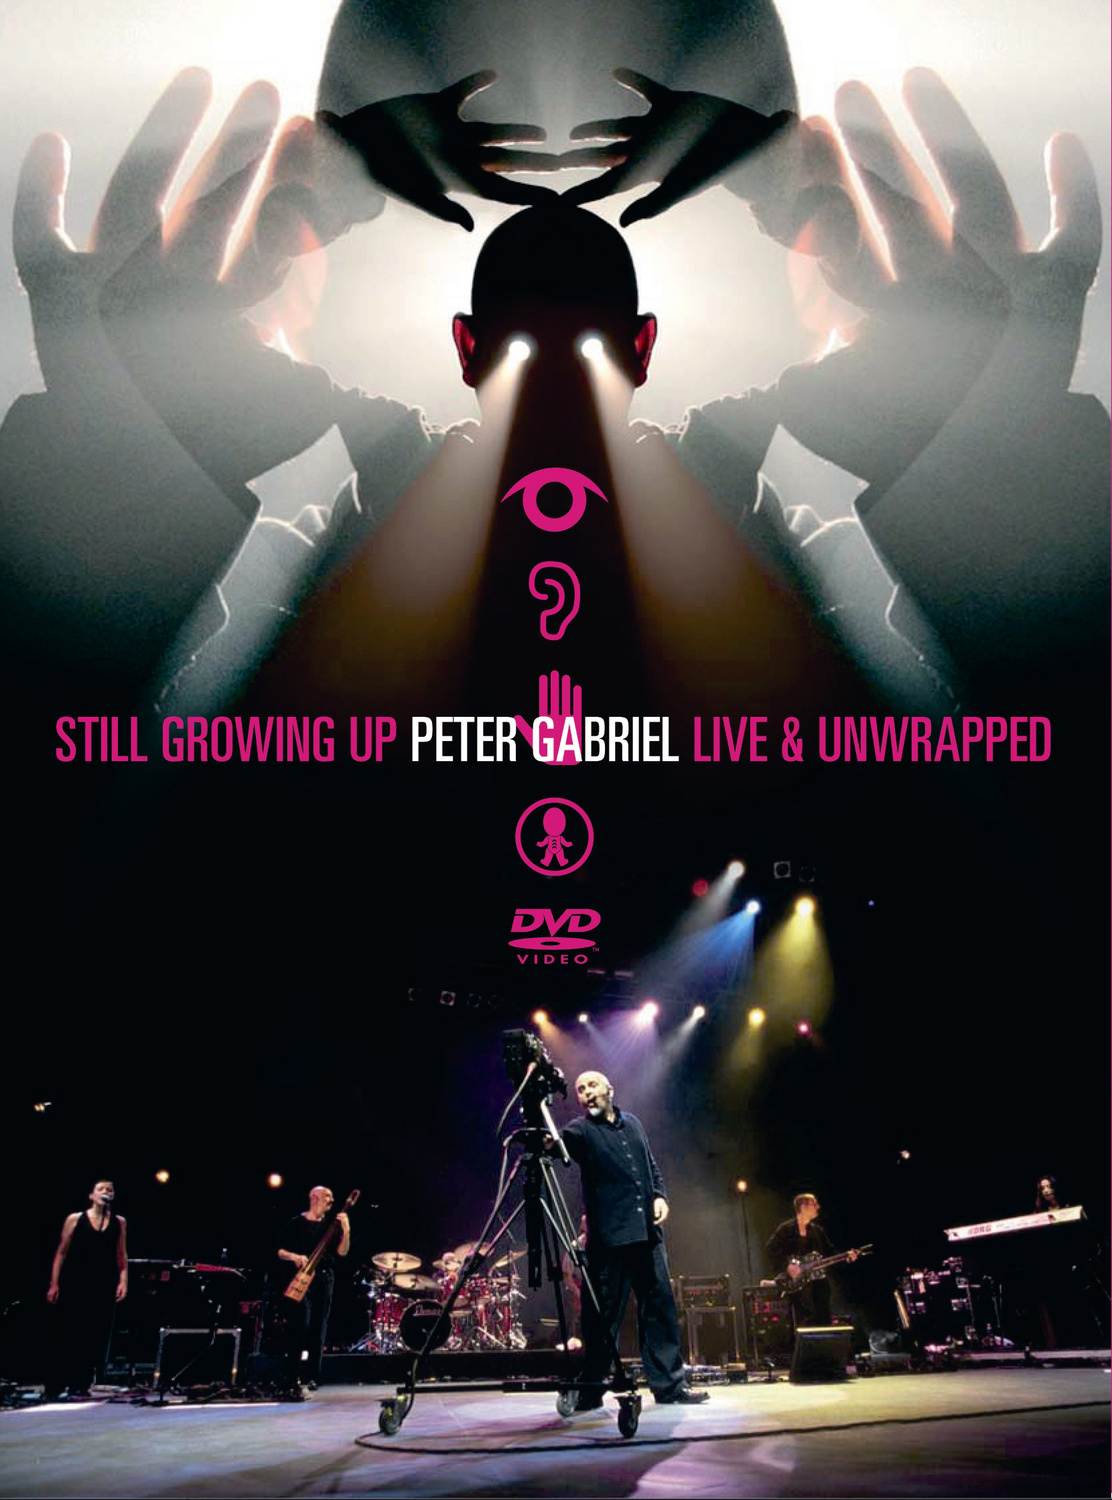 Peter Gabriel - Still Growing Up: Live & Unwrapped (2 DVDs)